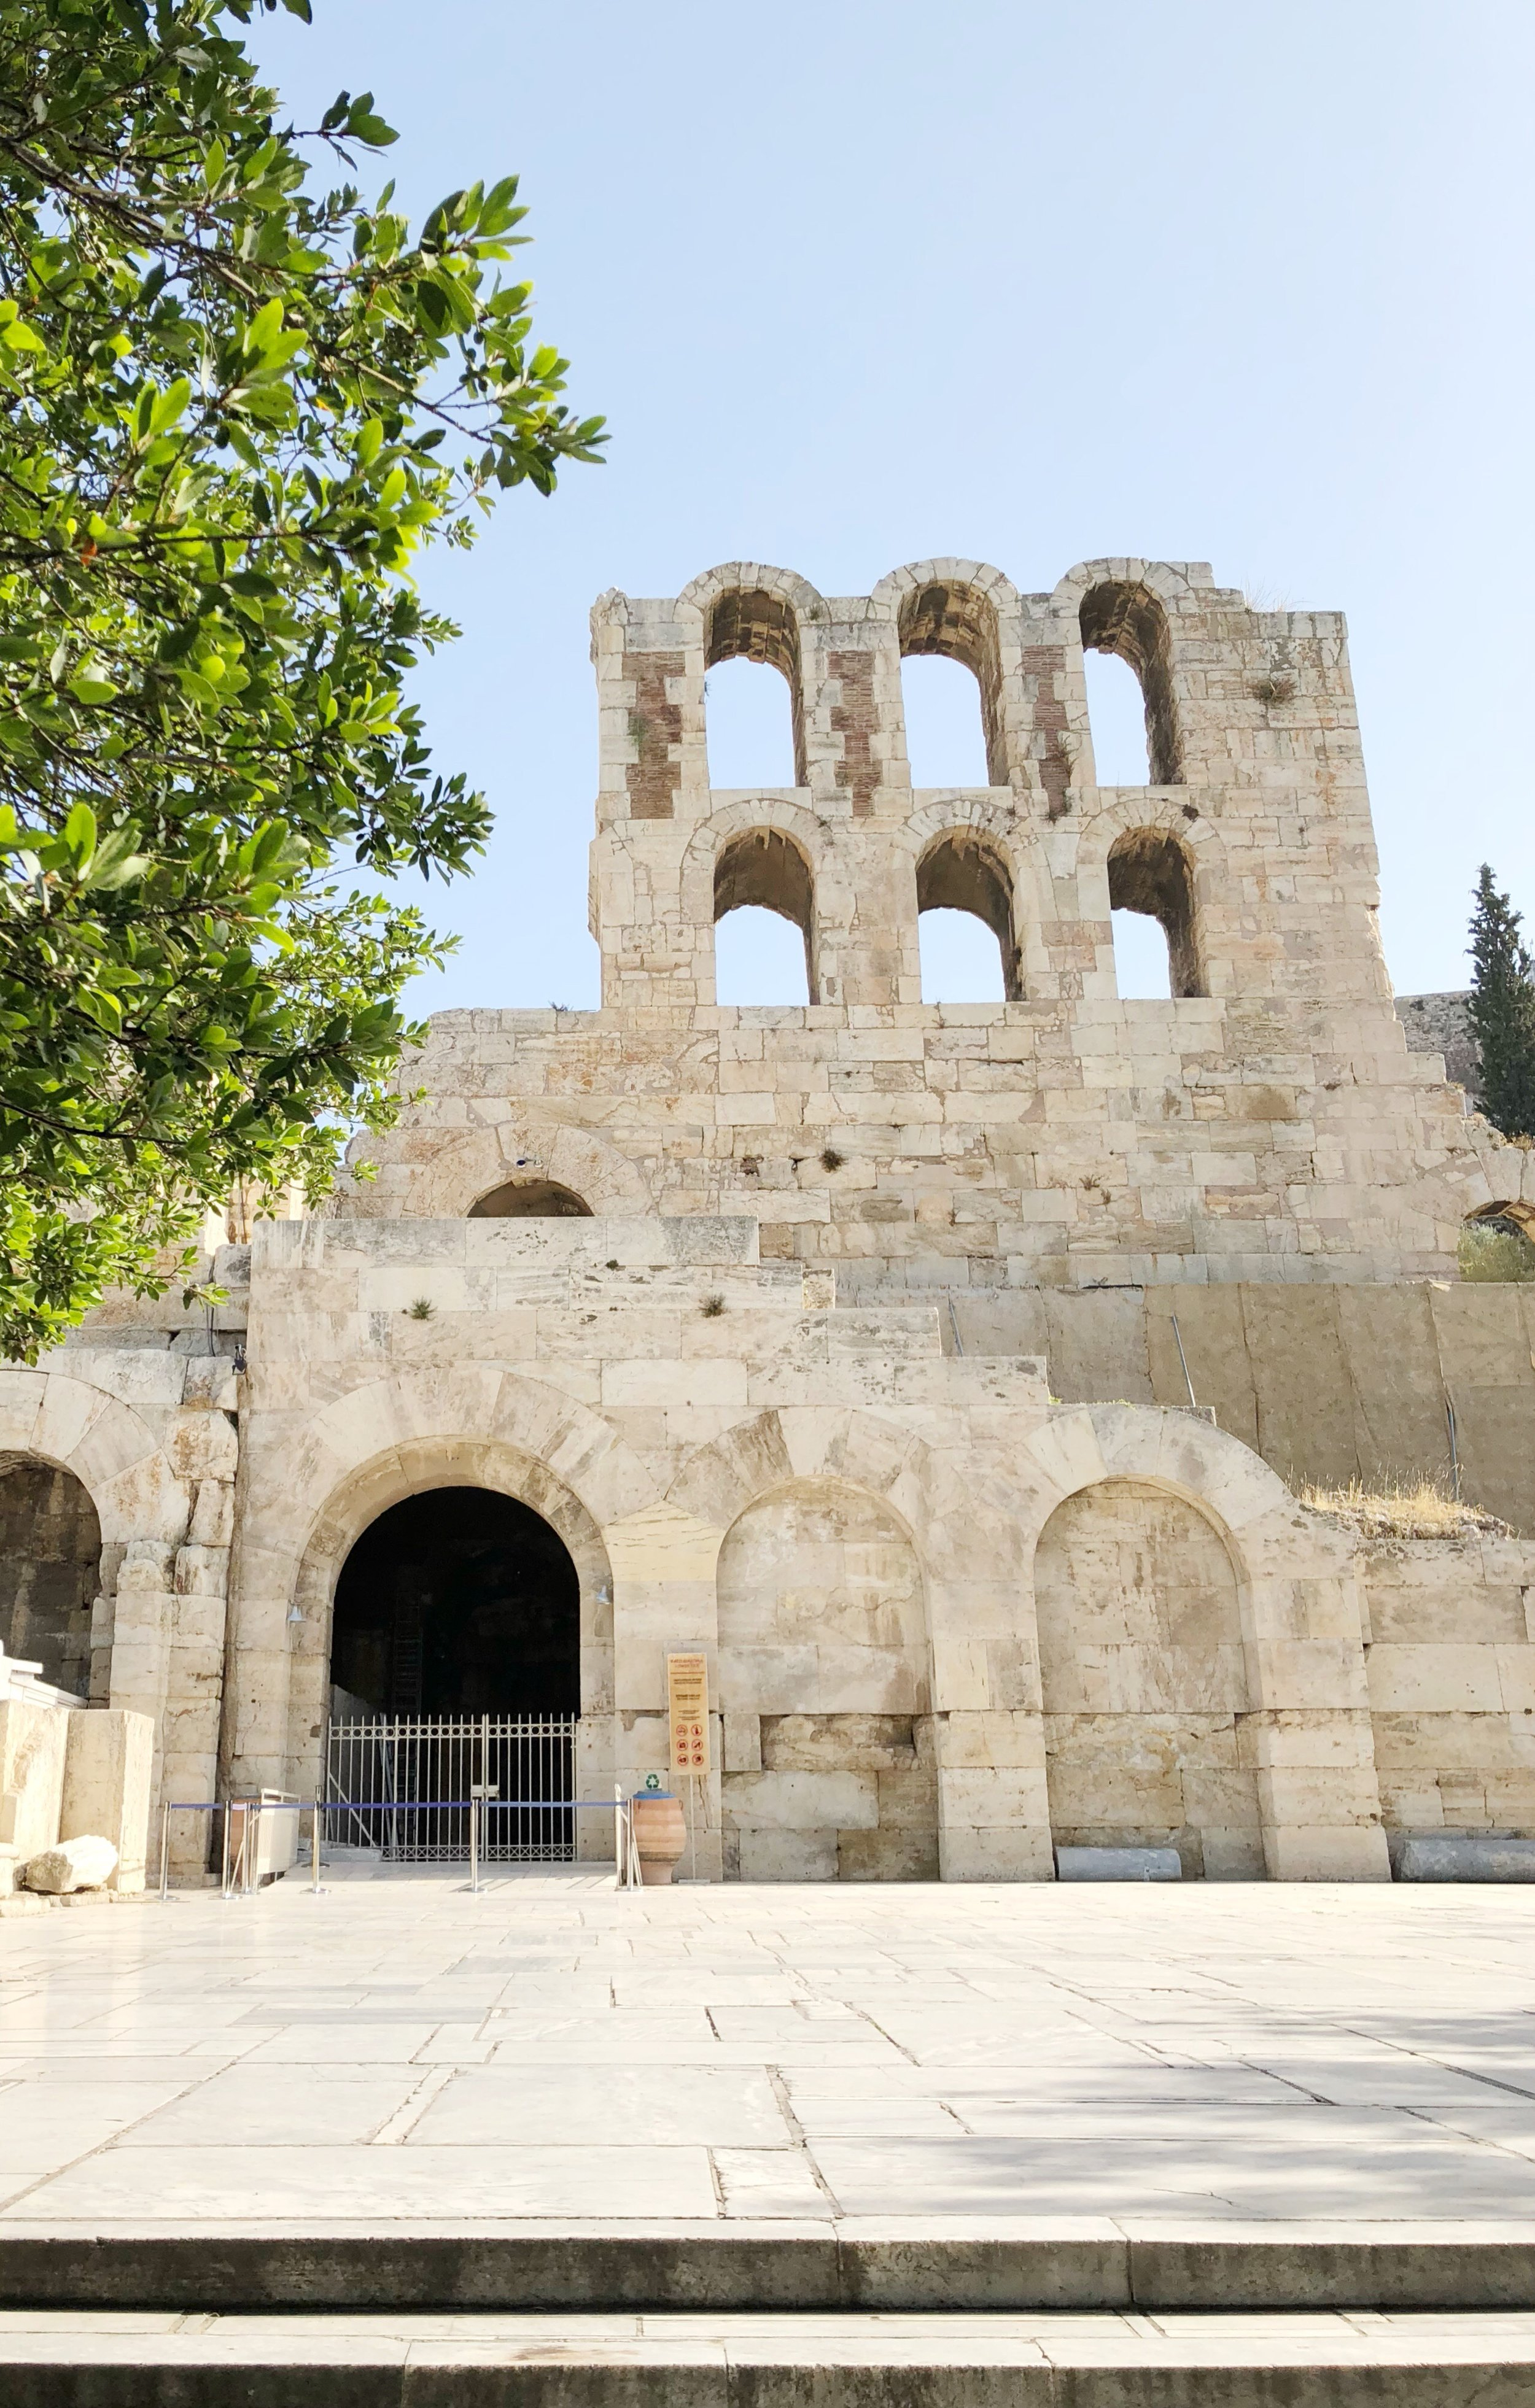 This is what you first see when walking up to the Acropolis - the Herodes Theater.